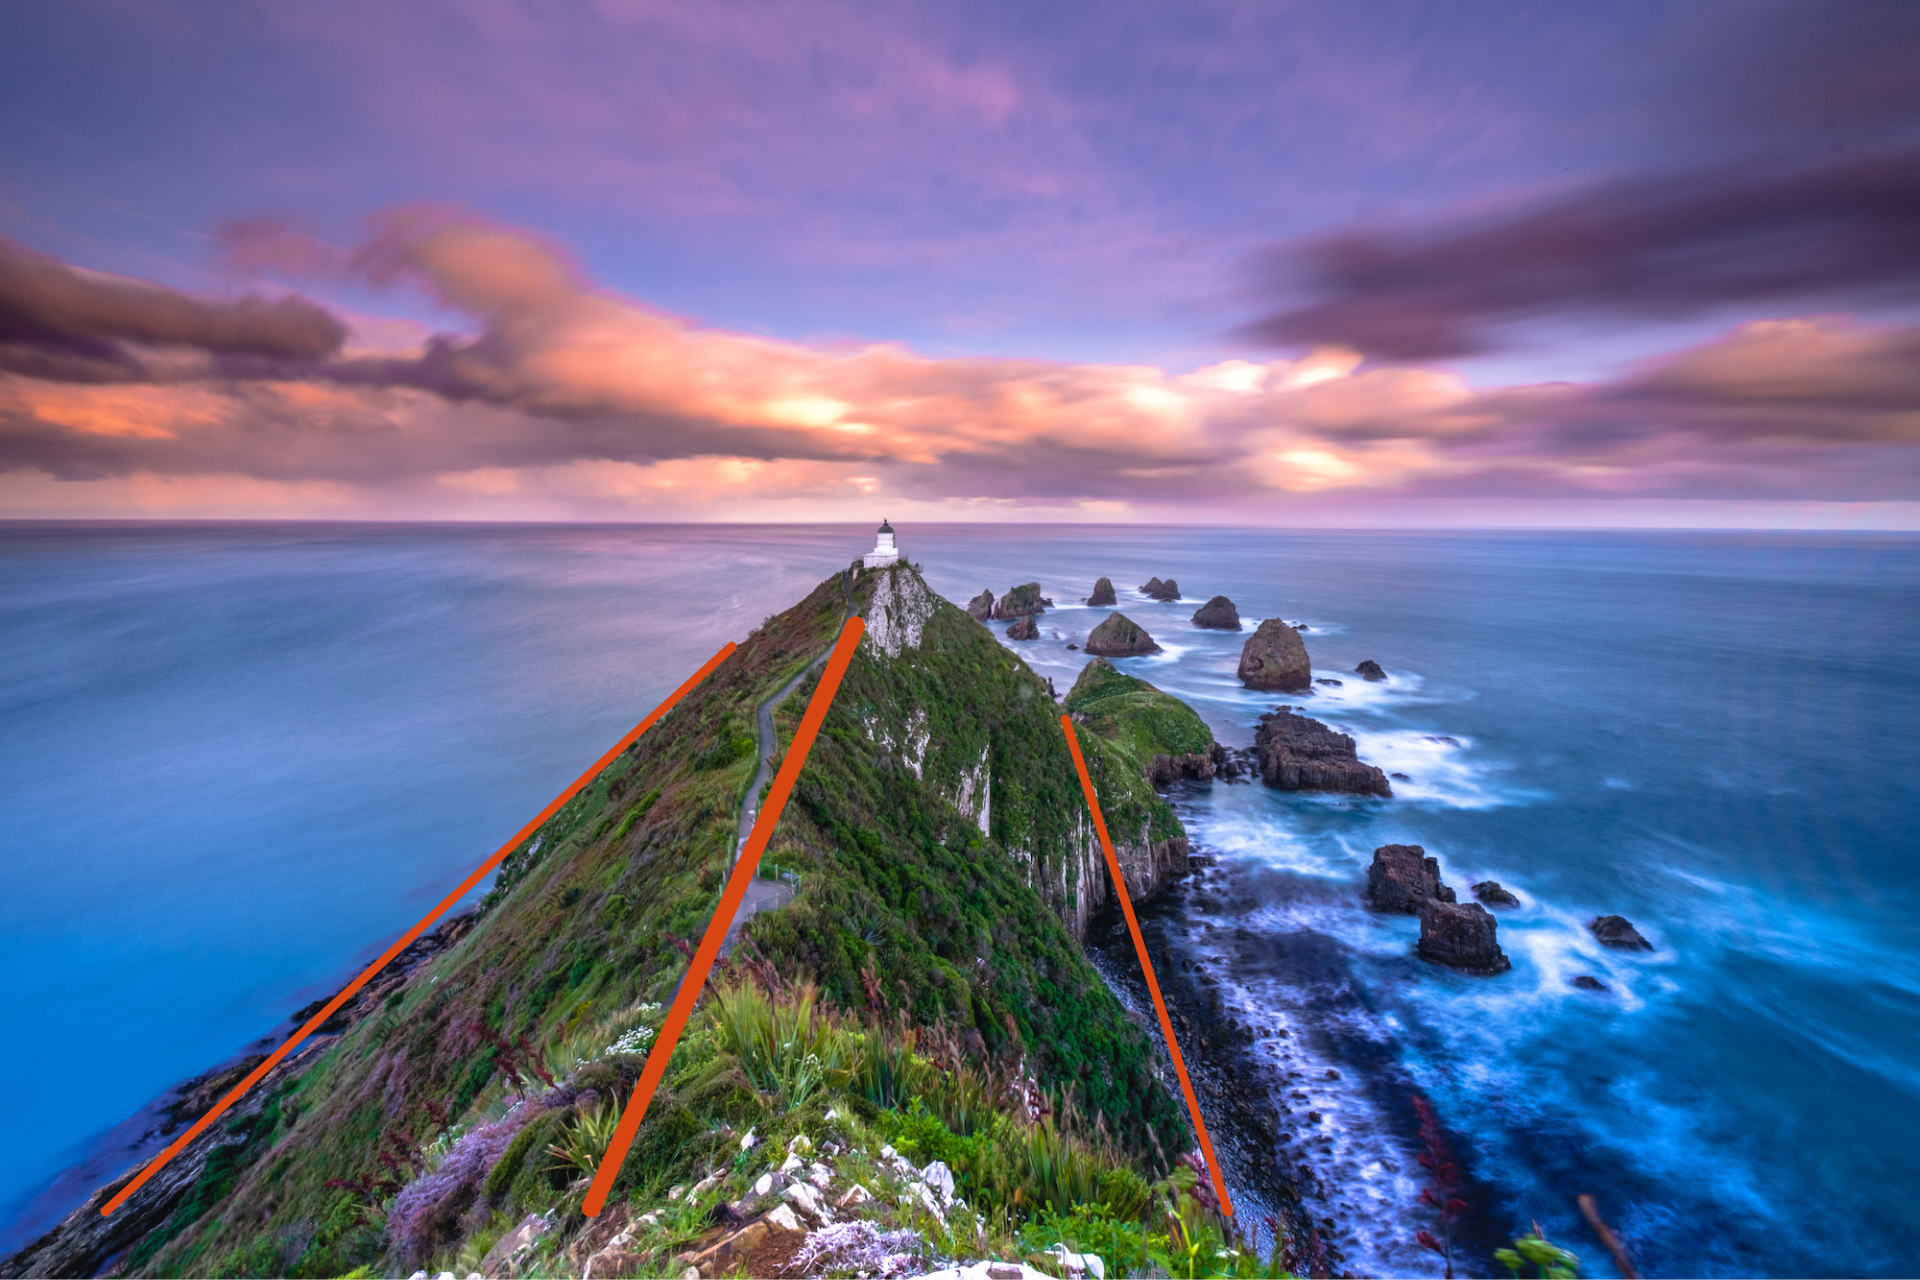 Landscape composition with leading lines guiding the viewer to the Lighthouse